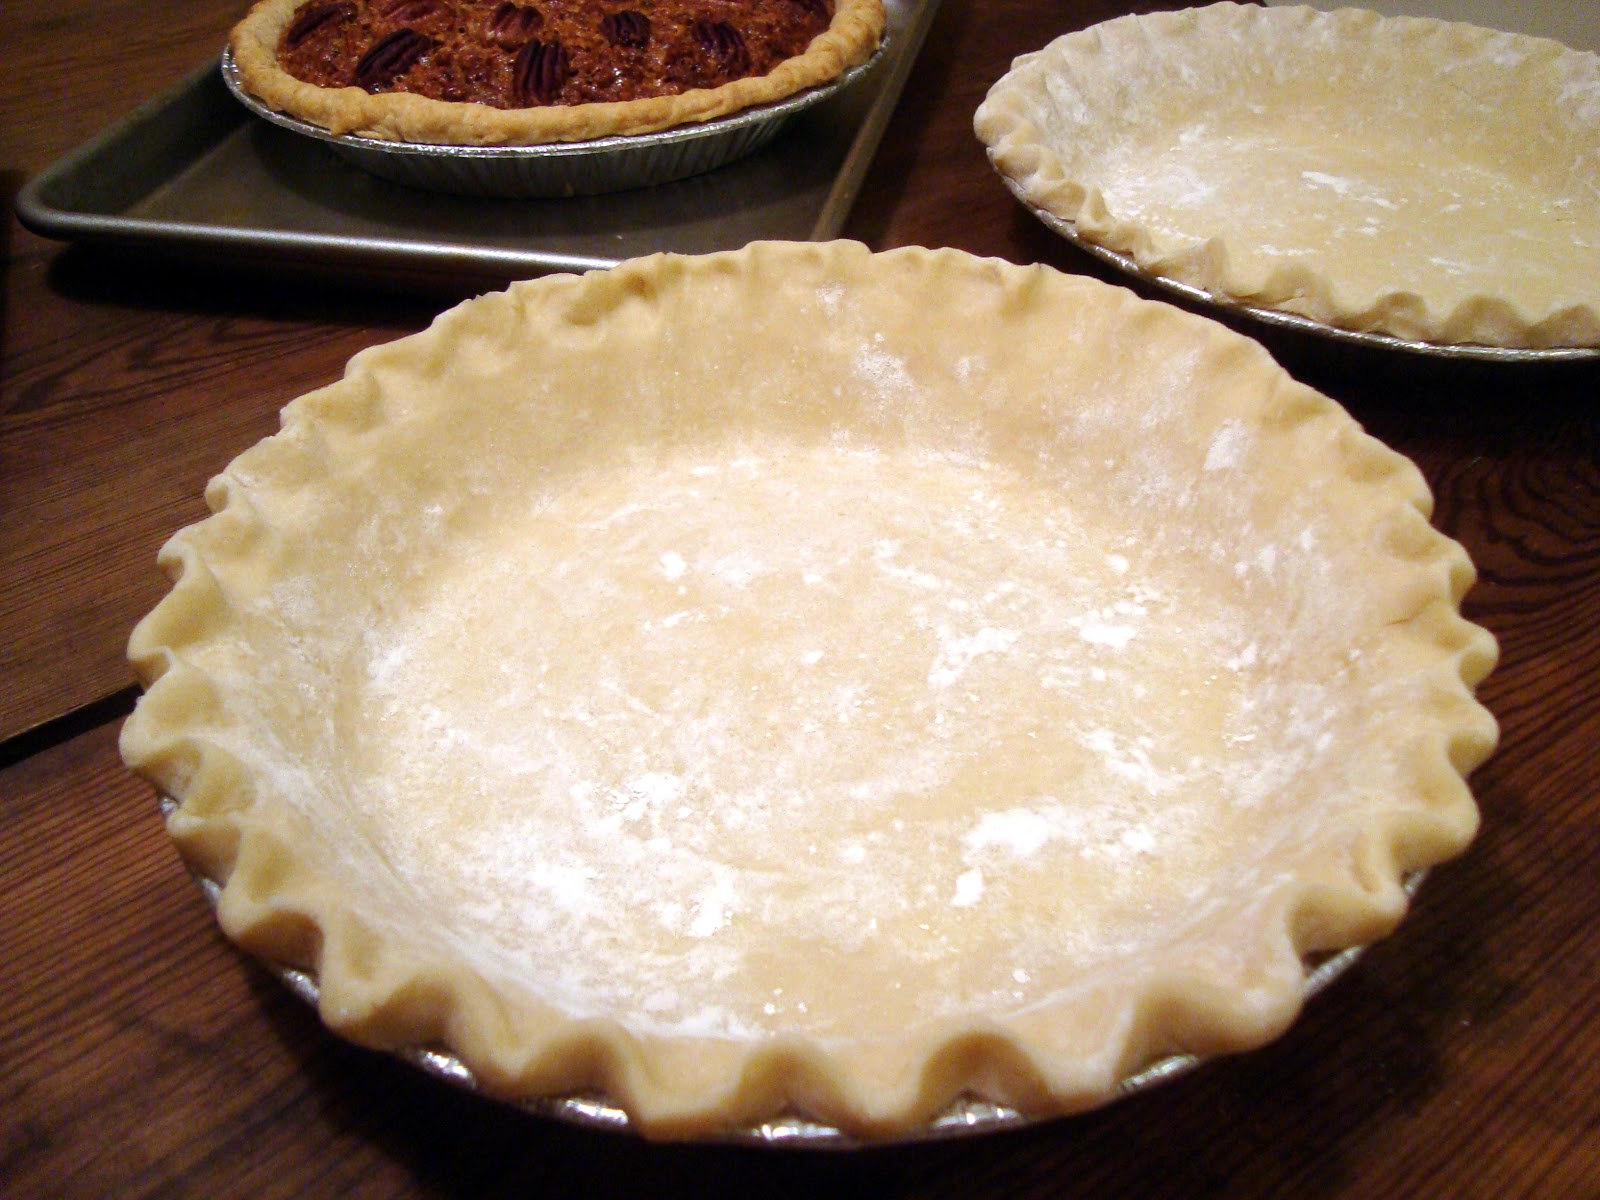 Headspace: Freezing Pie Crusts